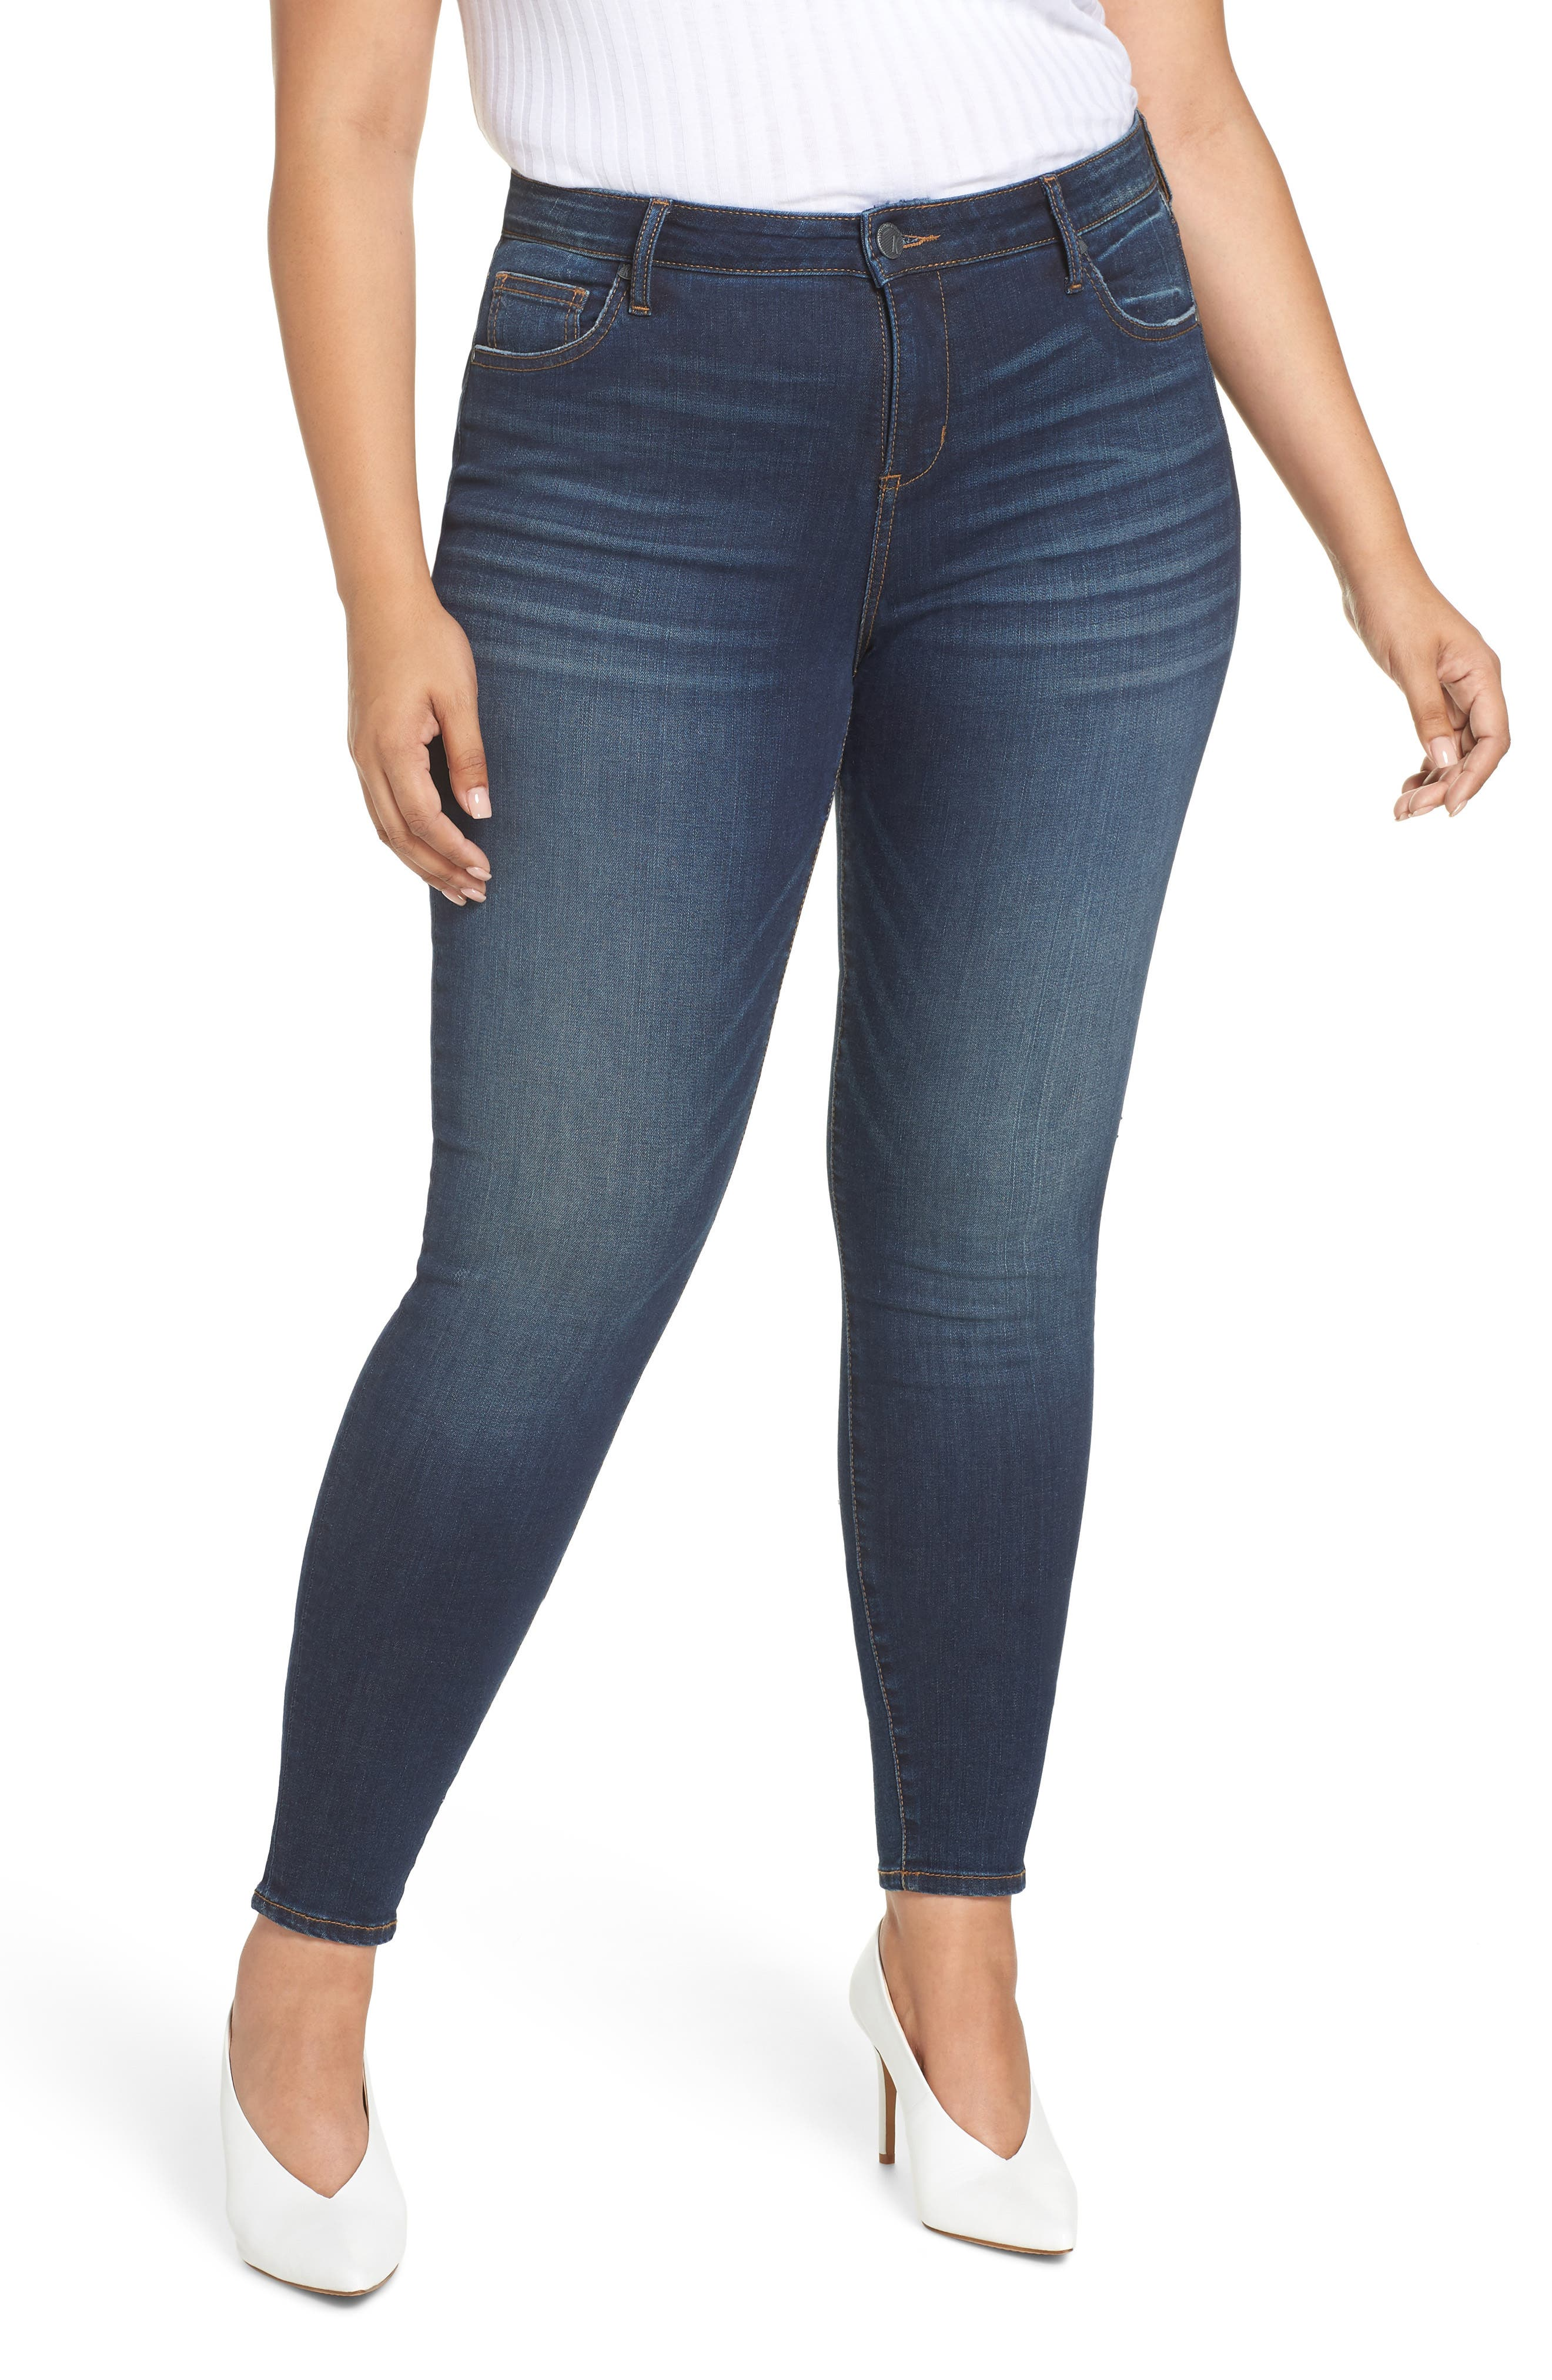 Plus Size Kut From The Kloth Mia High Waist Skinny Jeans, Blue